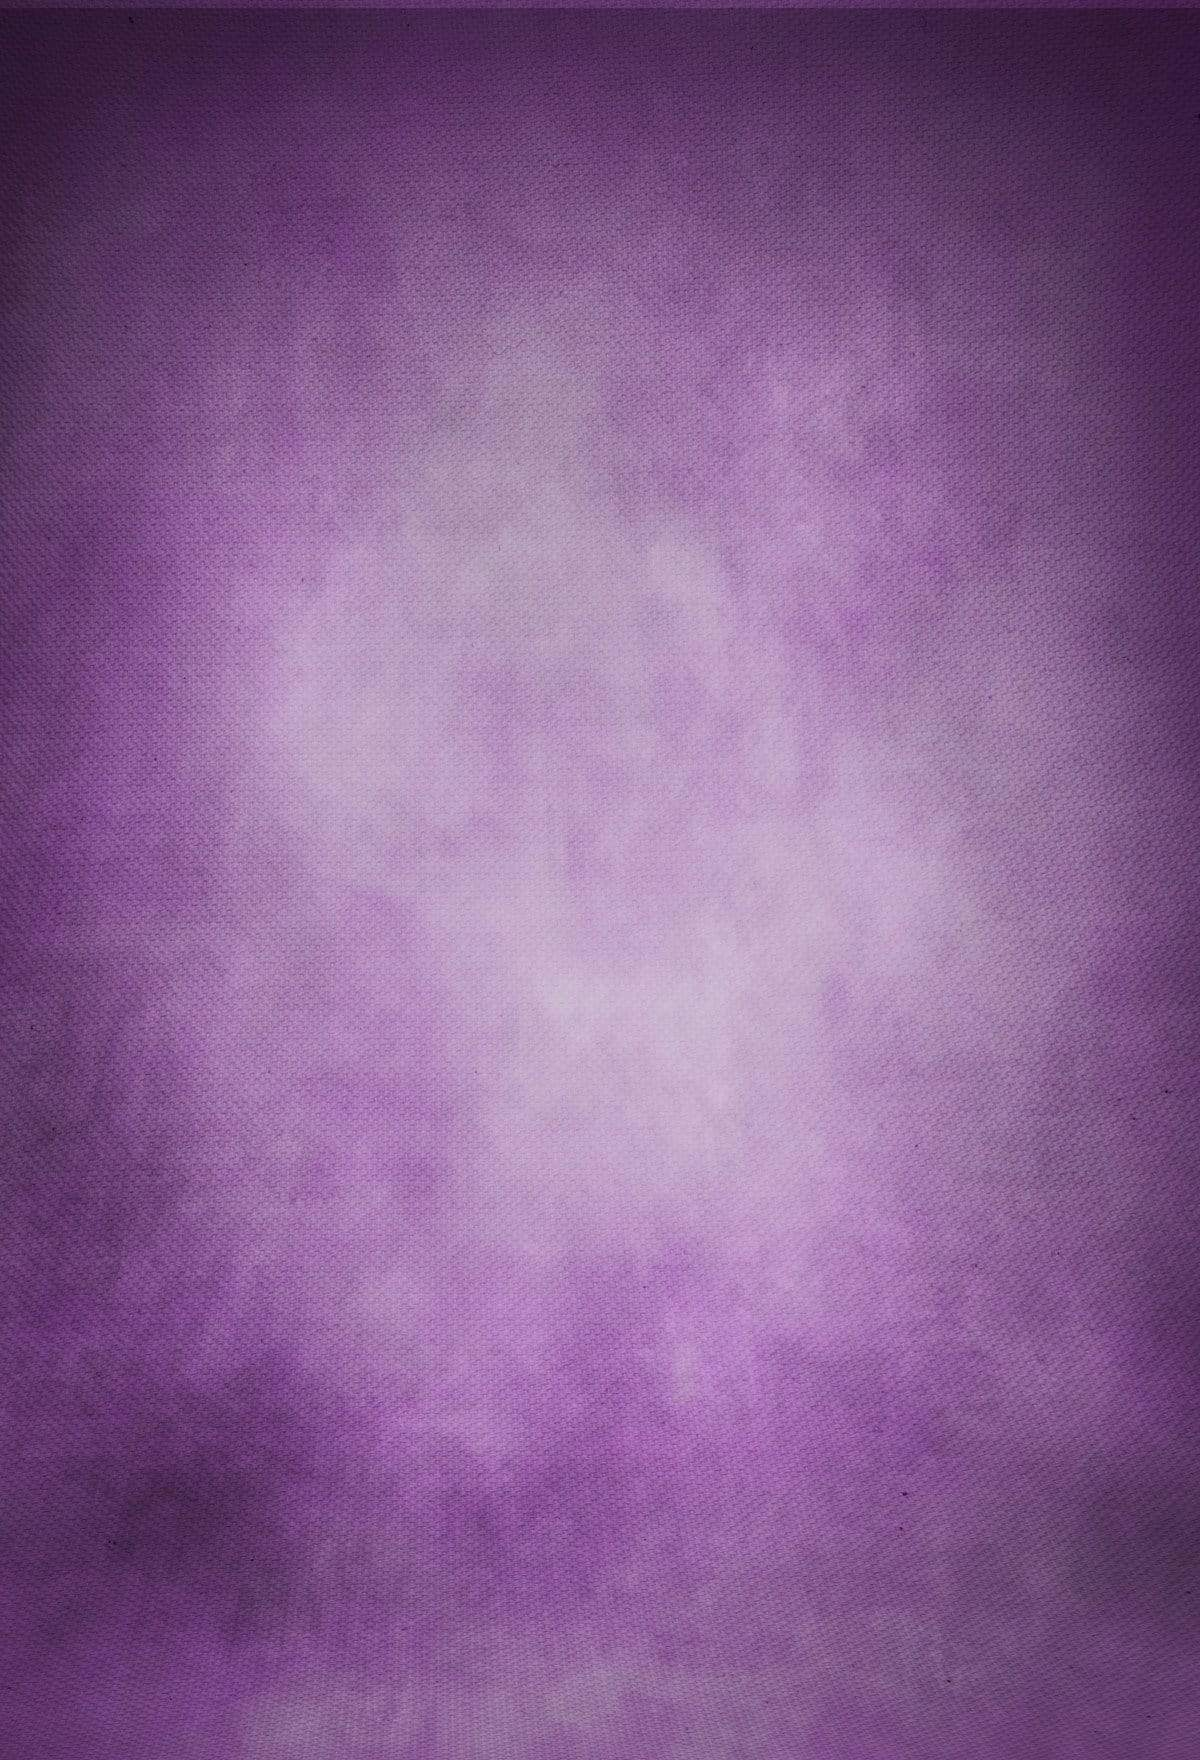 Load image into Gallery viewer, Kate Dark Purple Abstract Texture Backdrop Designed by JFCC